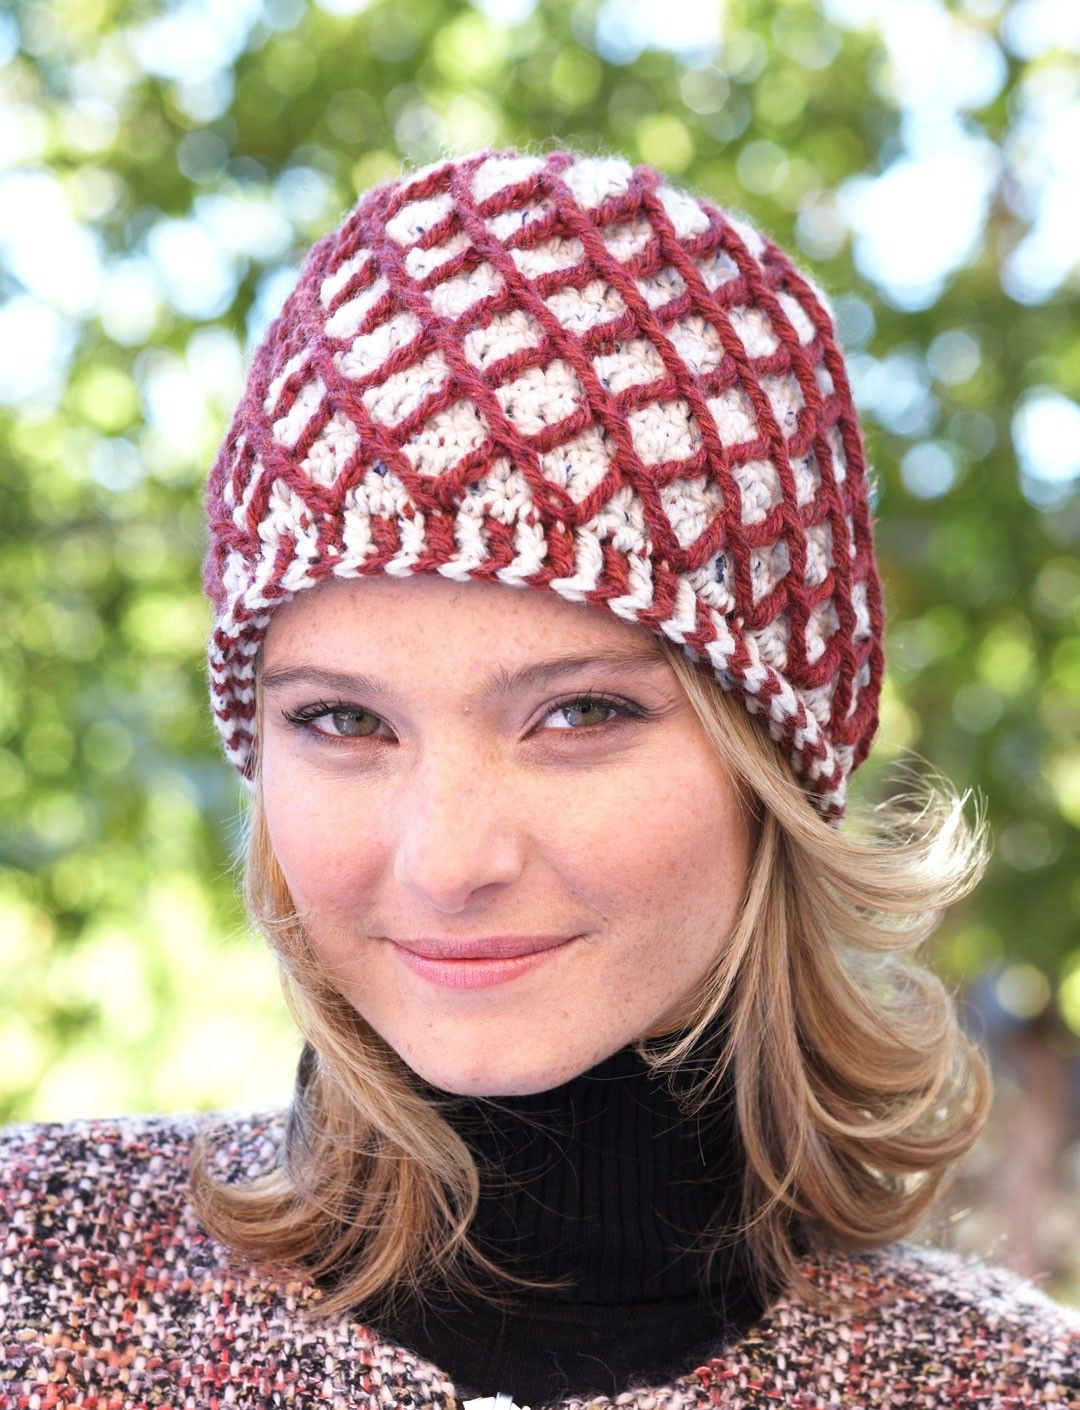 Yarnspirations.com - Patons Lattice Hat - Patterns | Yarnspirations ...